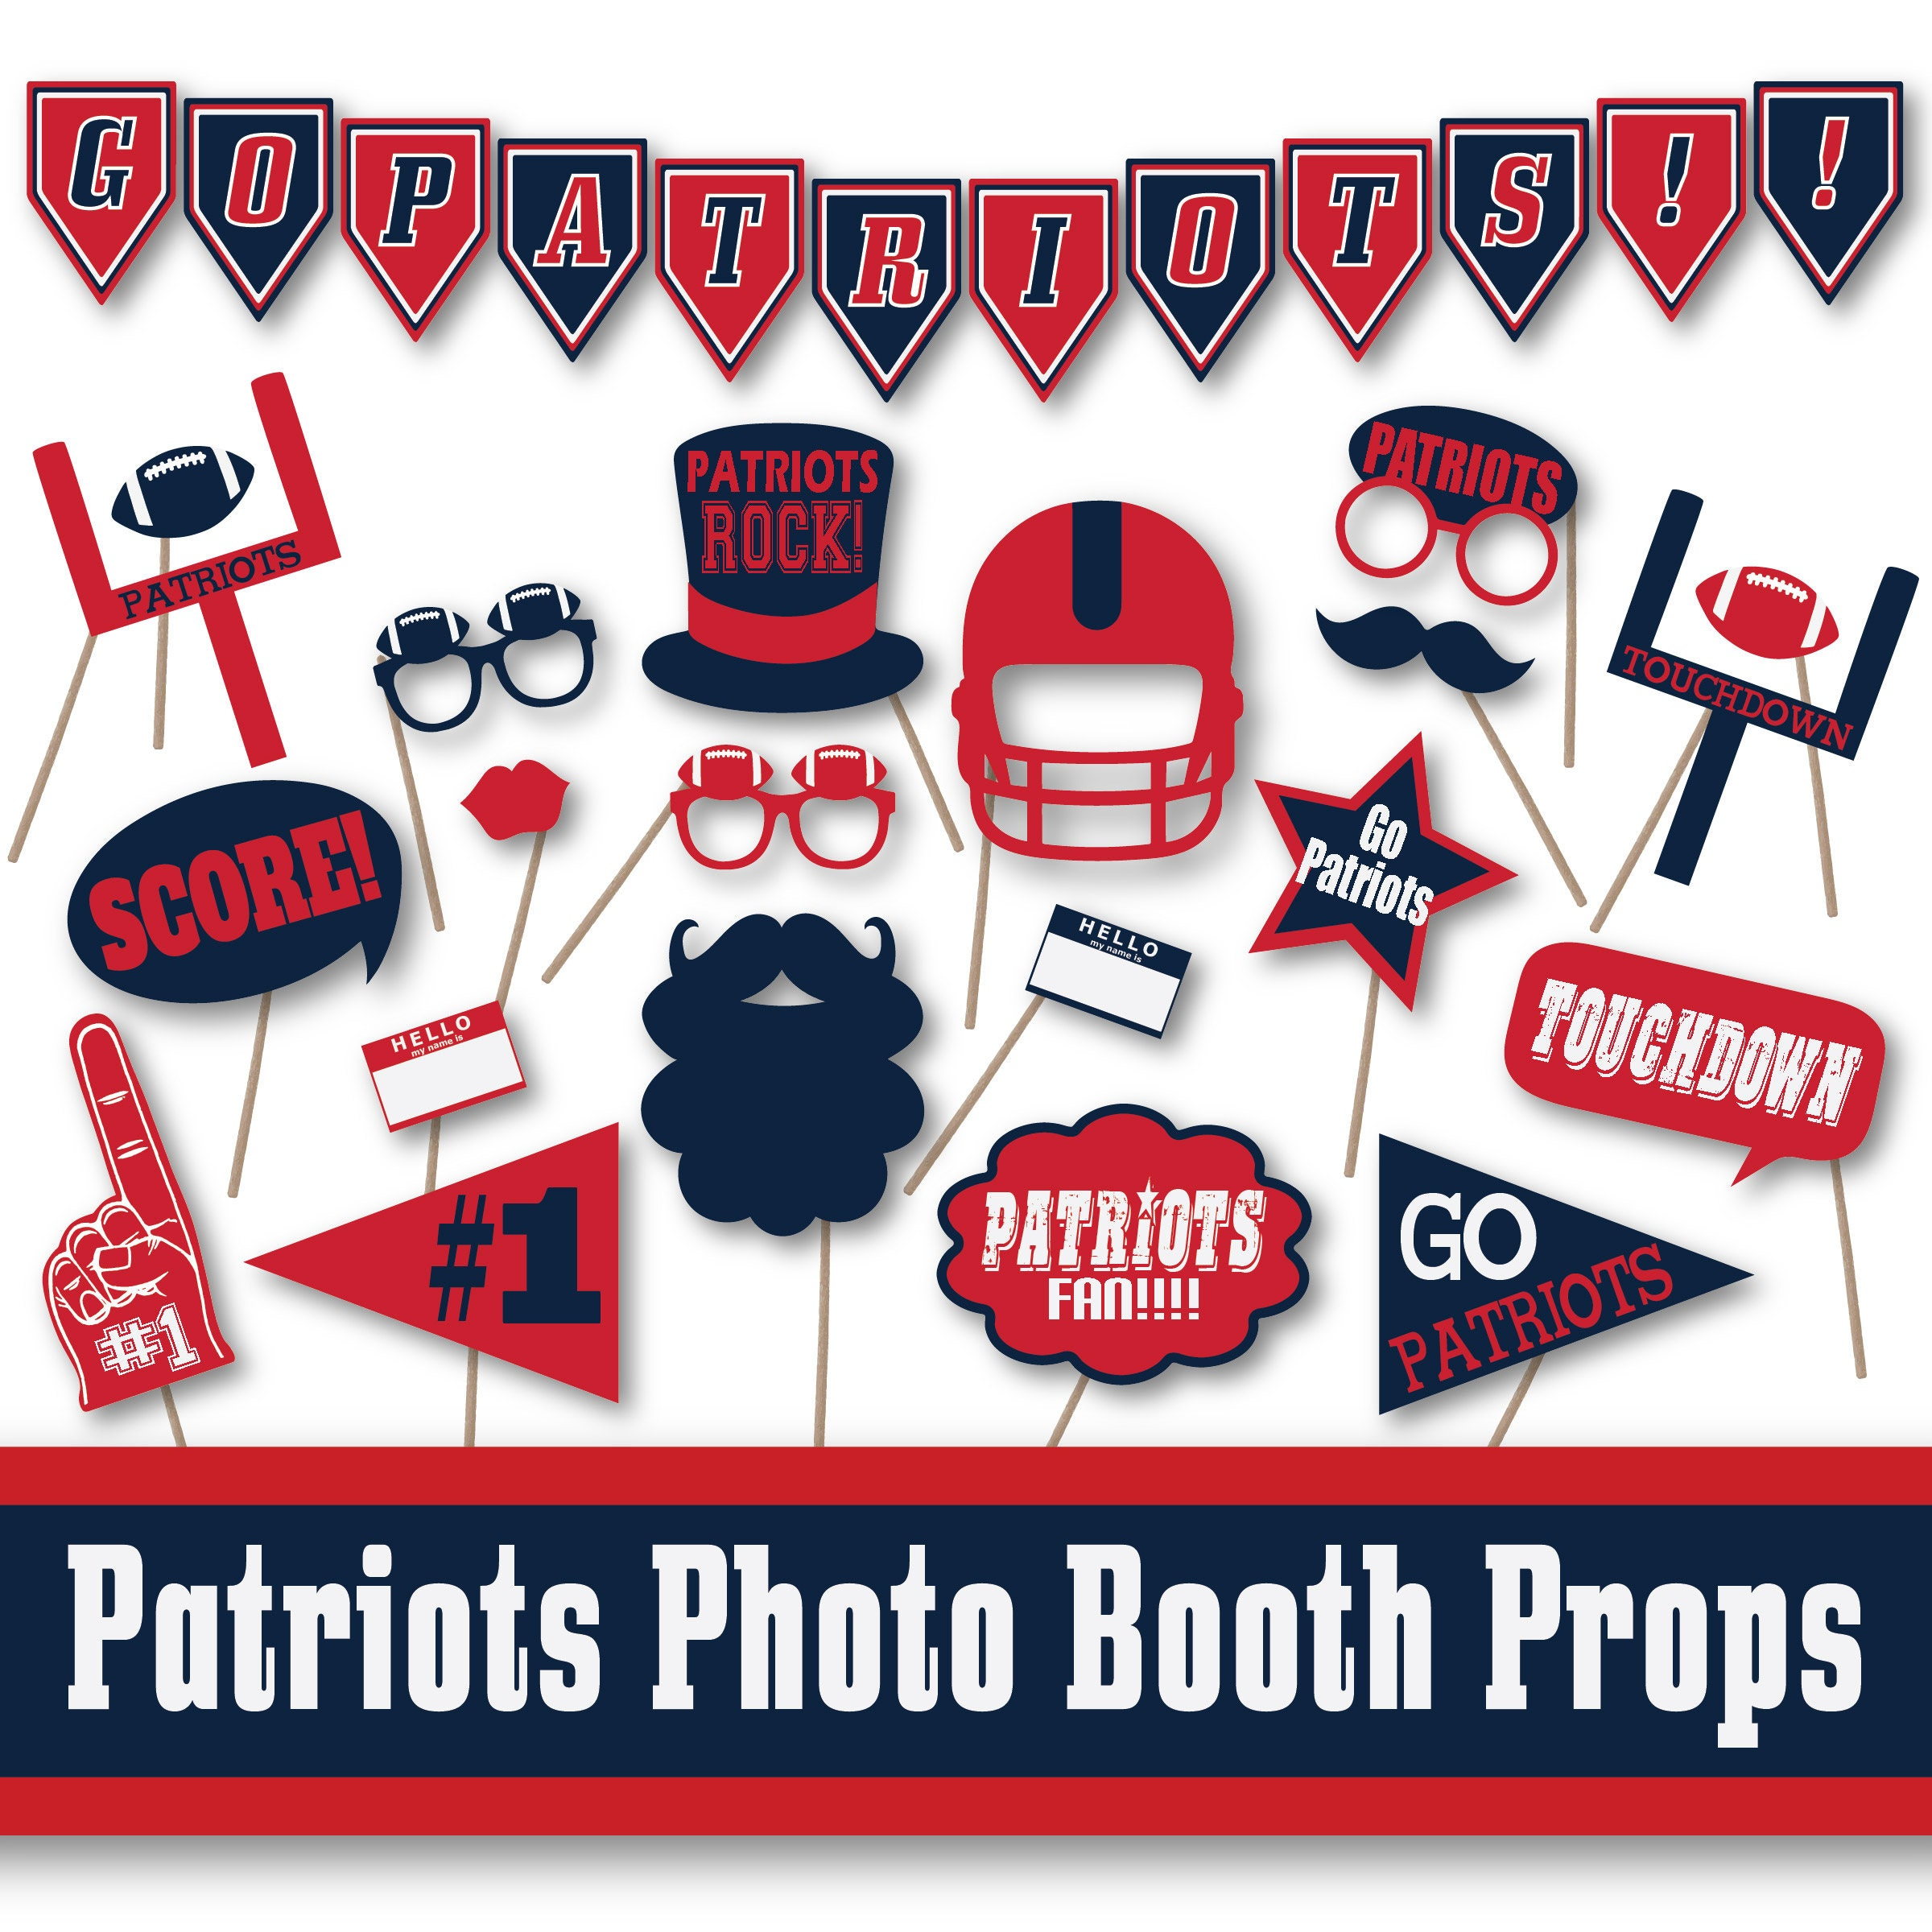 Super Bowl Party Decorations Uk: Patriots Football Photo Booth Props And Party Decorations